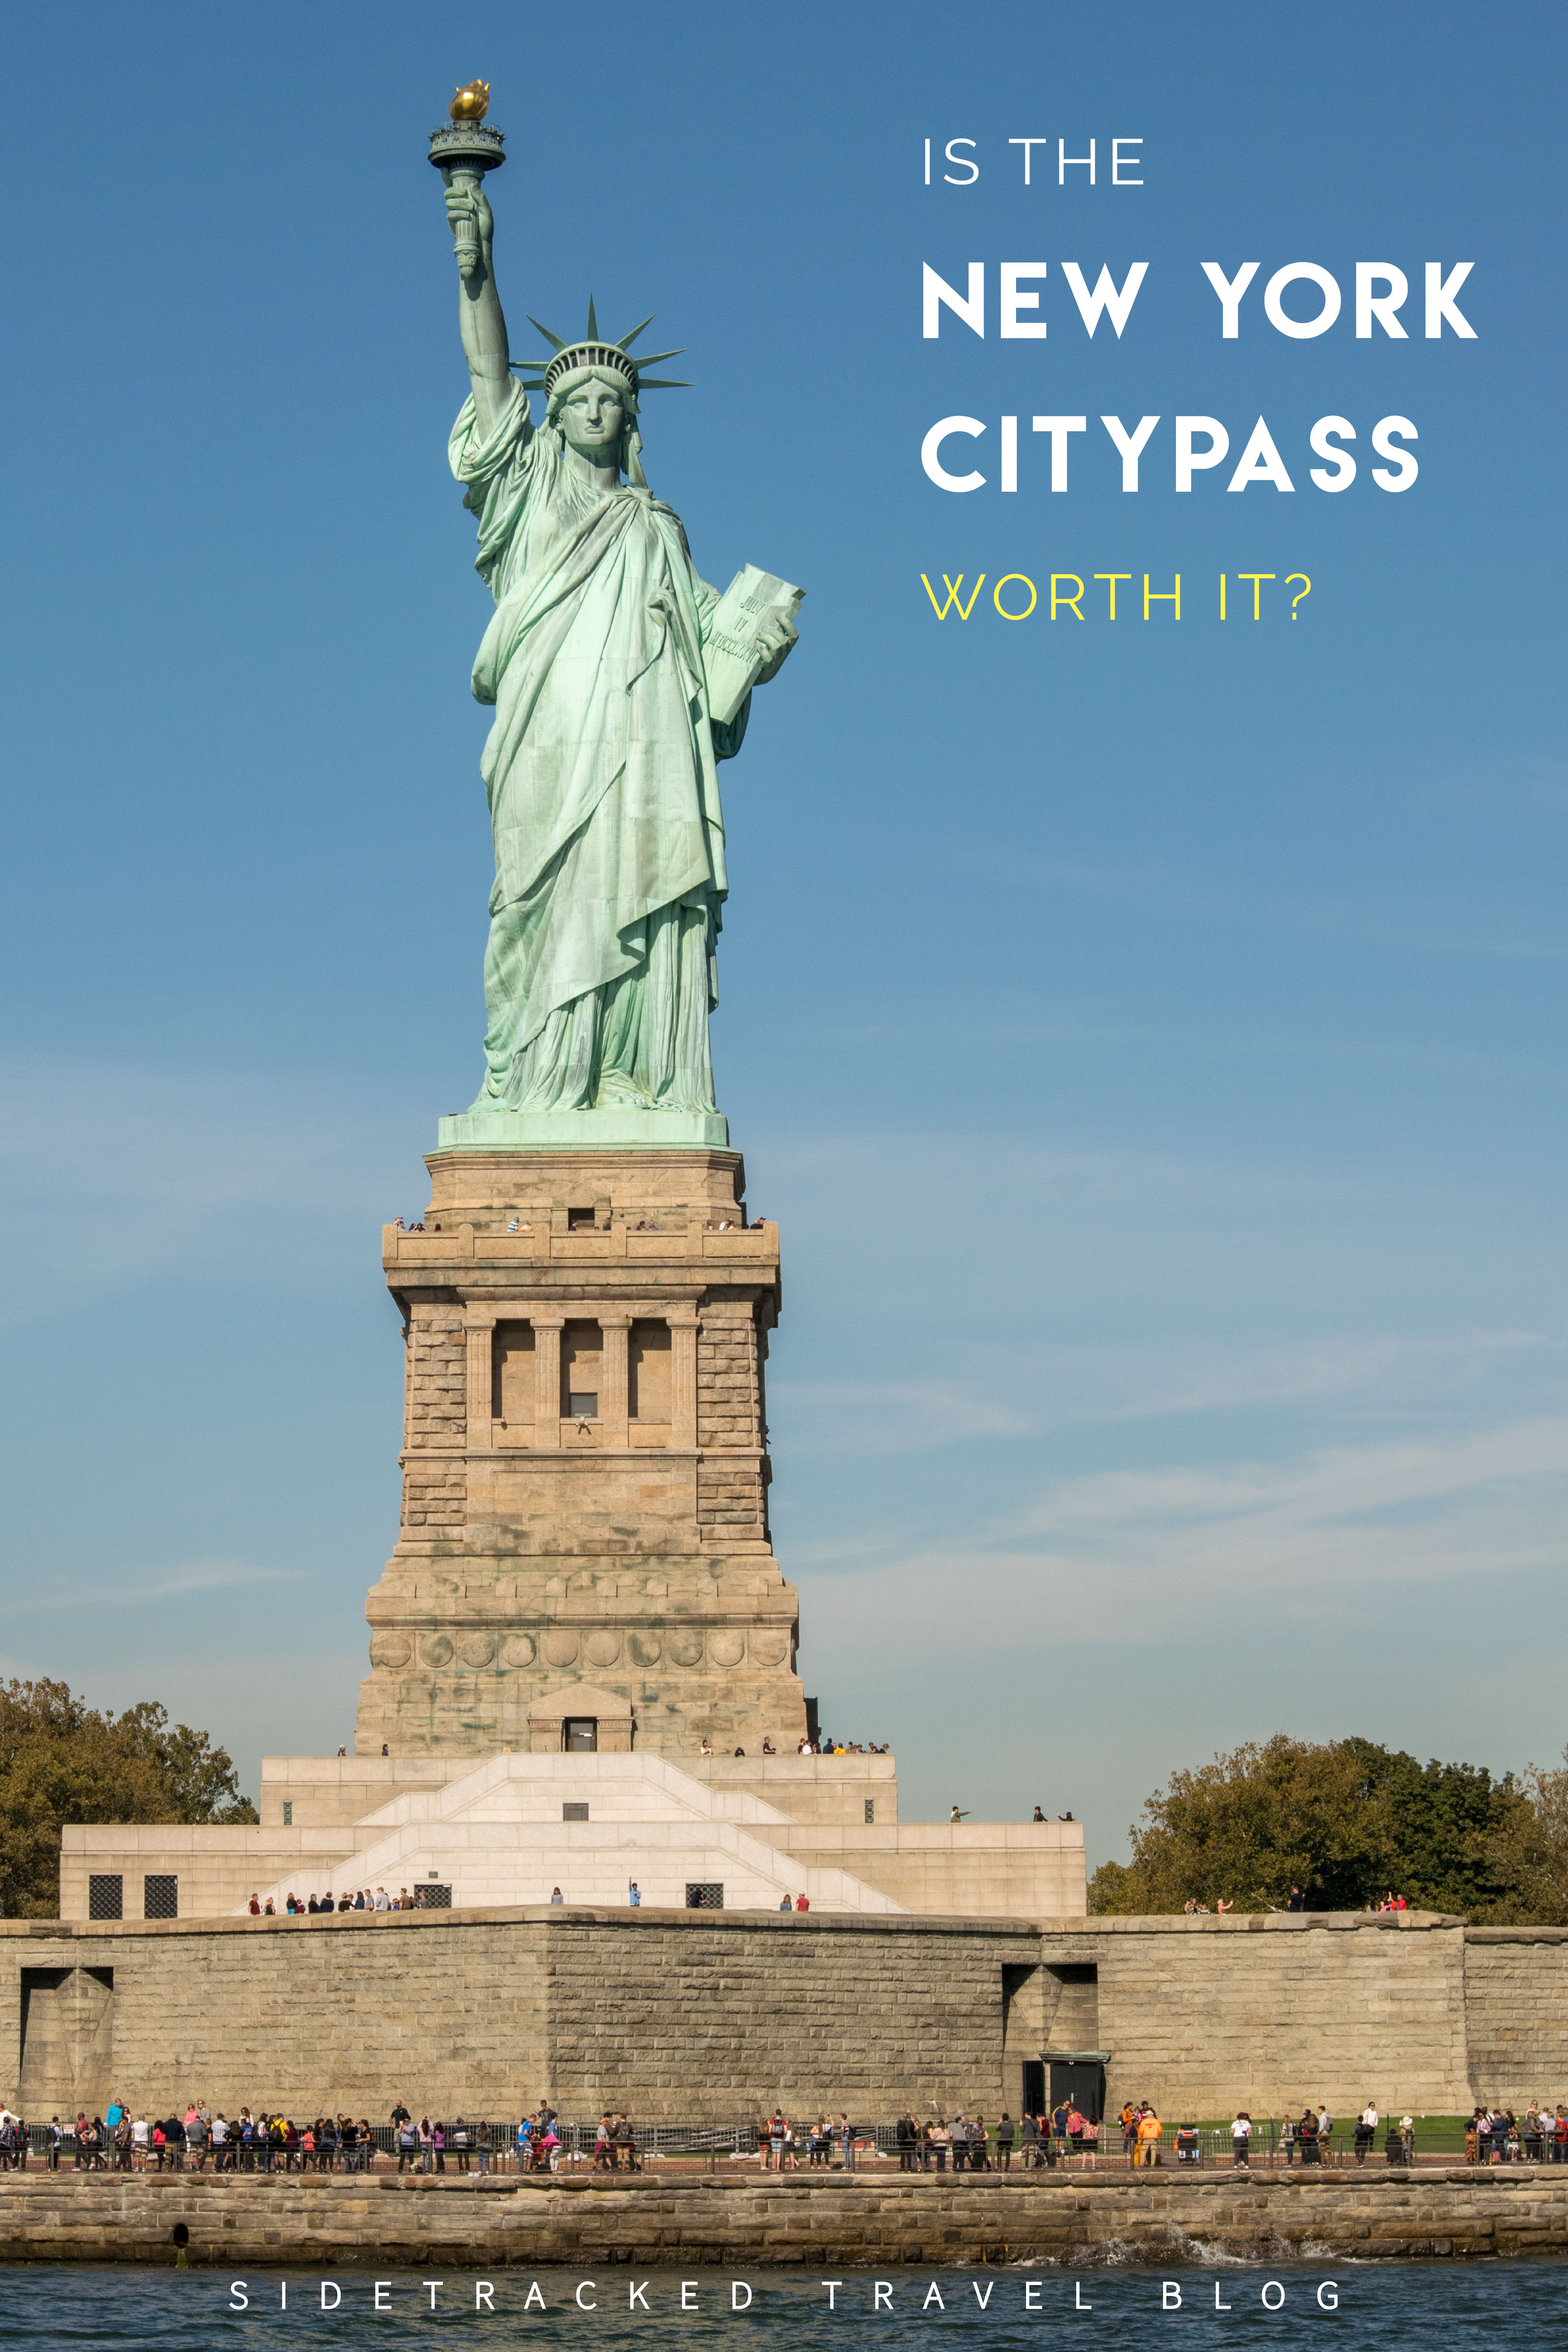 The New York CityPASS is a ticket booklet that includes admission to six of the Big Apple's top attractions for one reduced price. To see if it's truly worth it, I decided to give CityPASS a try during my recent visit to New York.